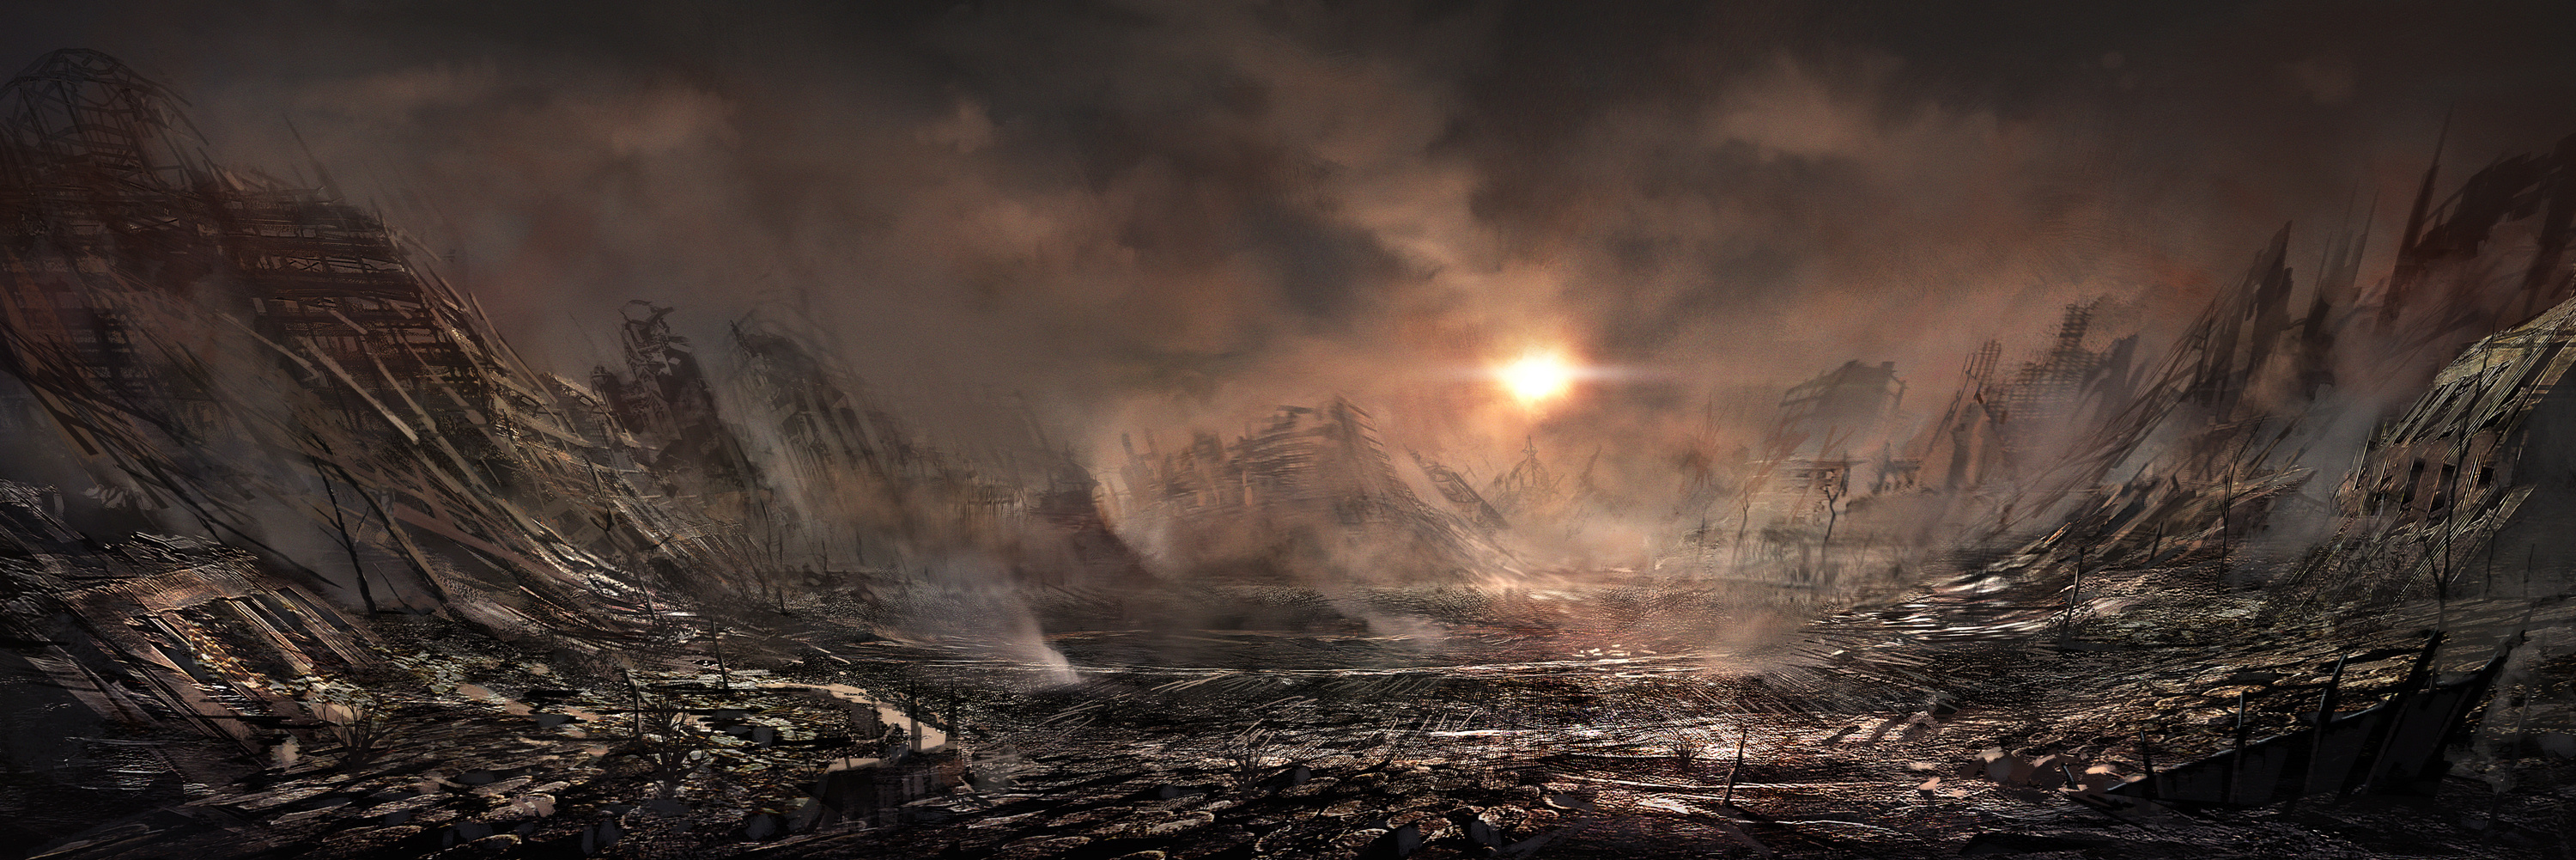 post-apocalyptic artwork HD Wallpaper